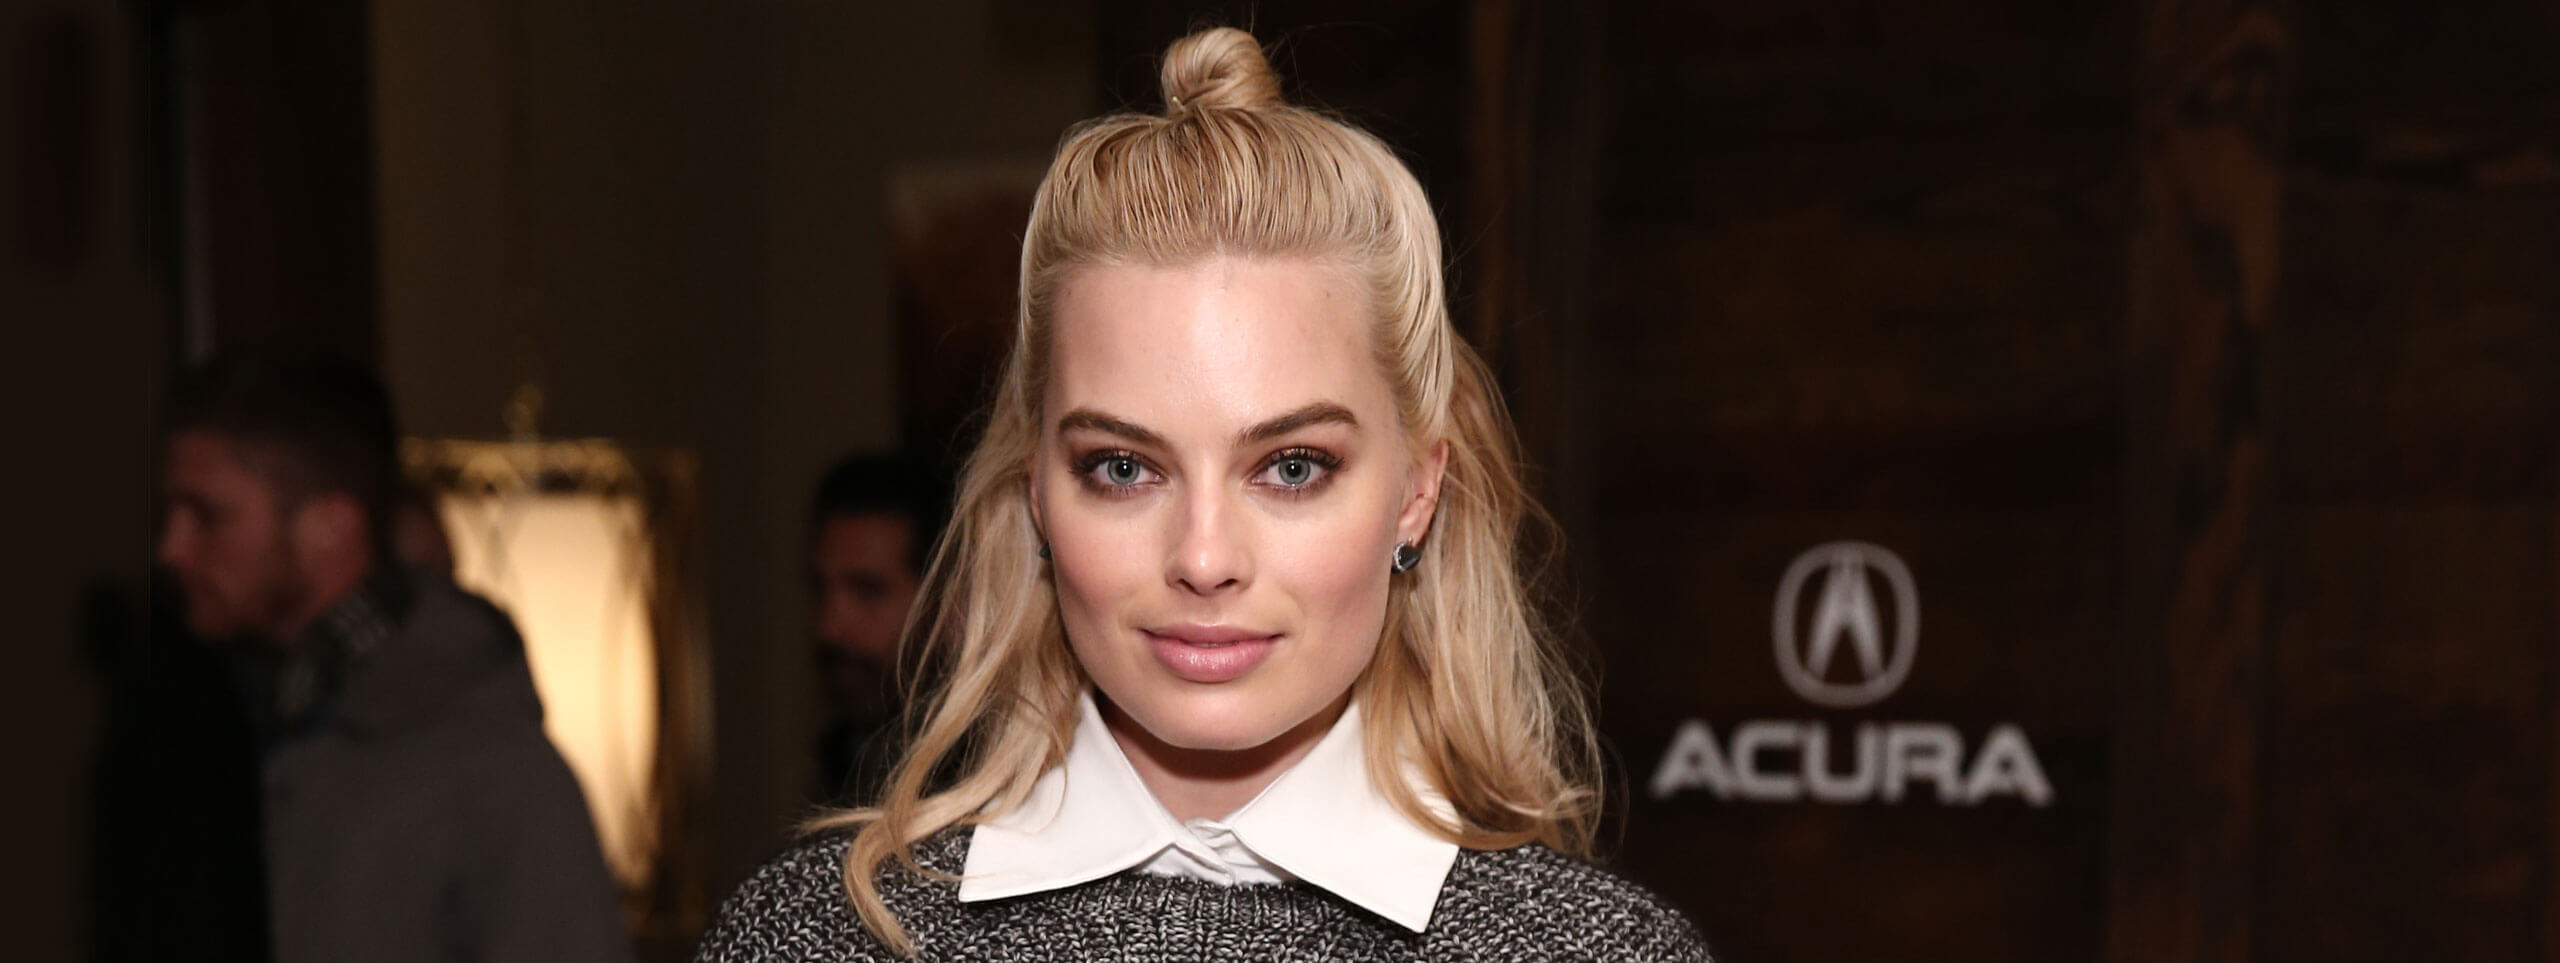 Margot Robbie con acconciatura semi-bun